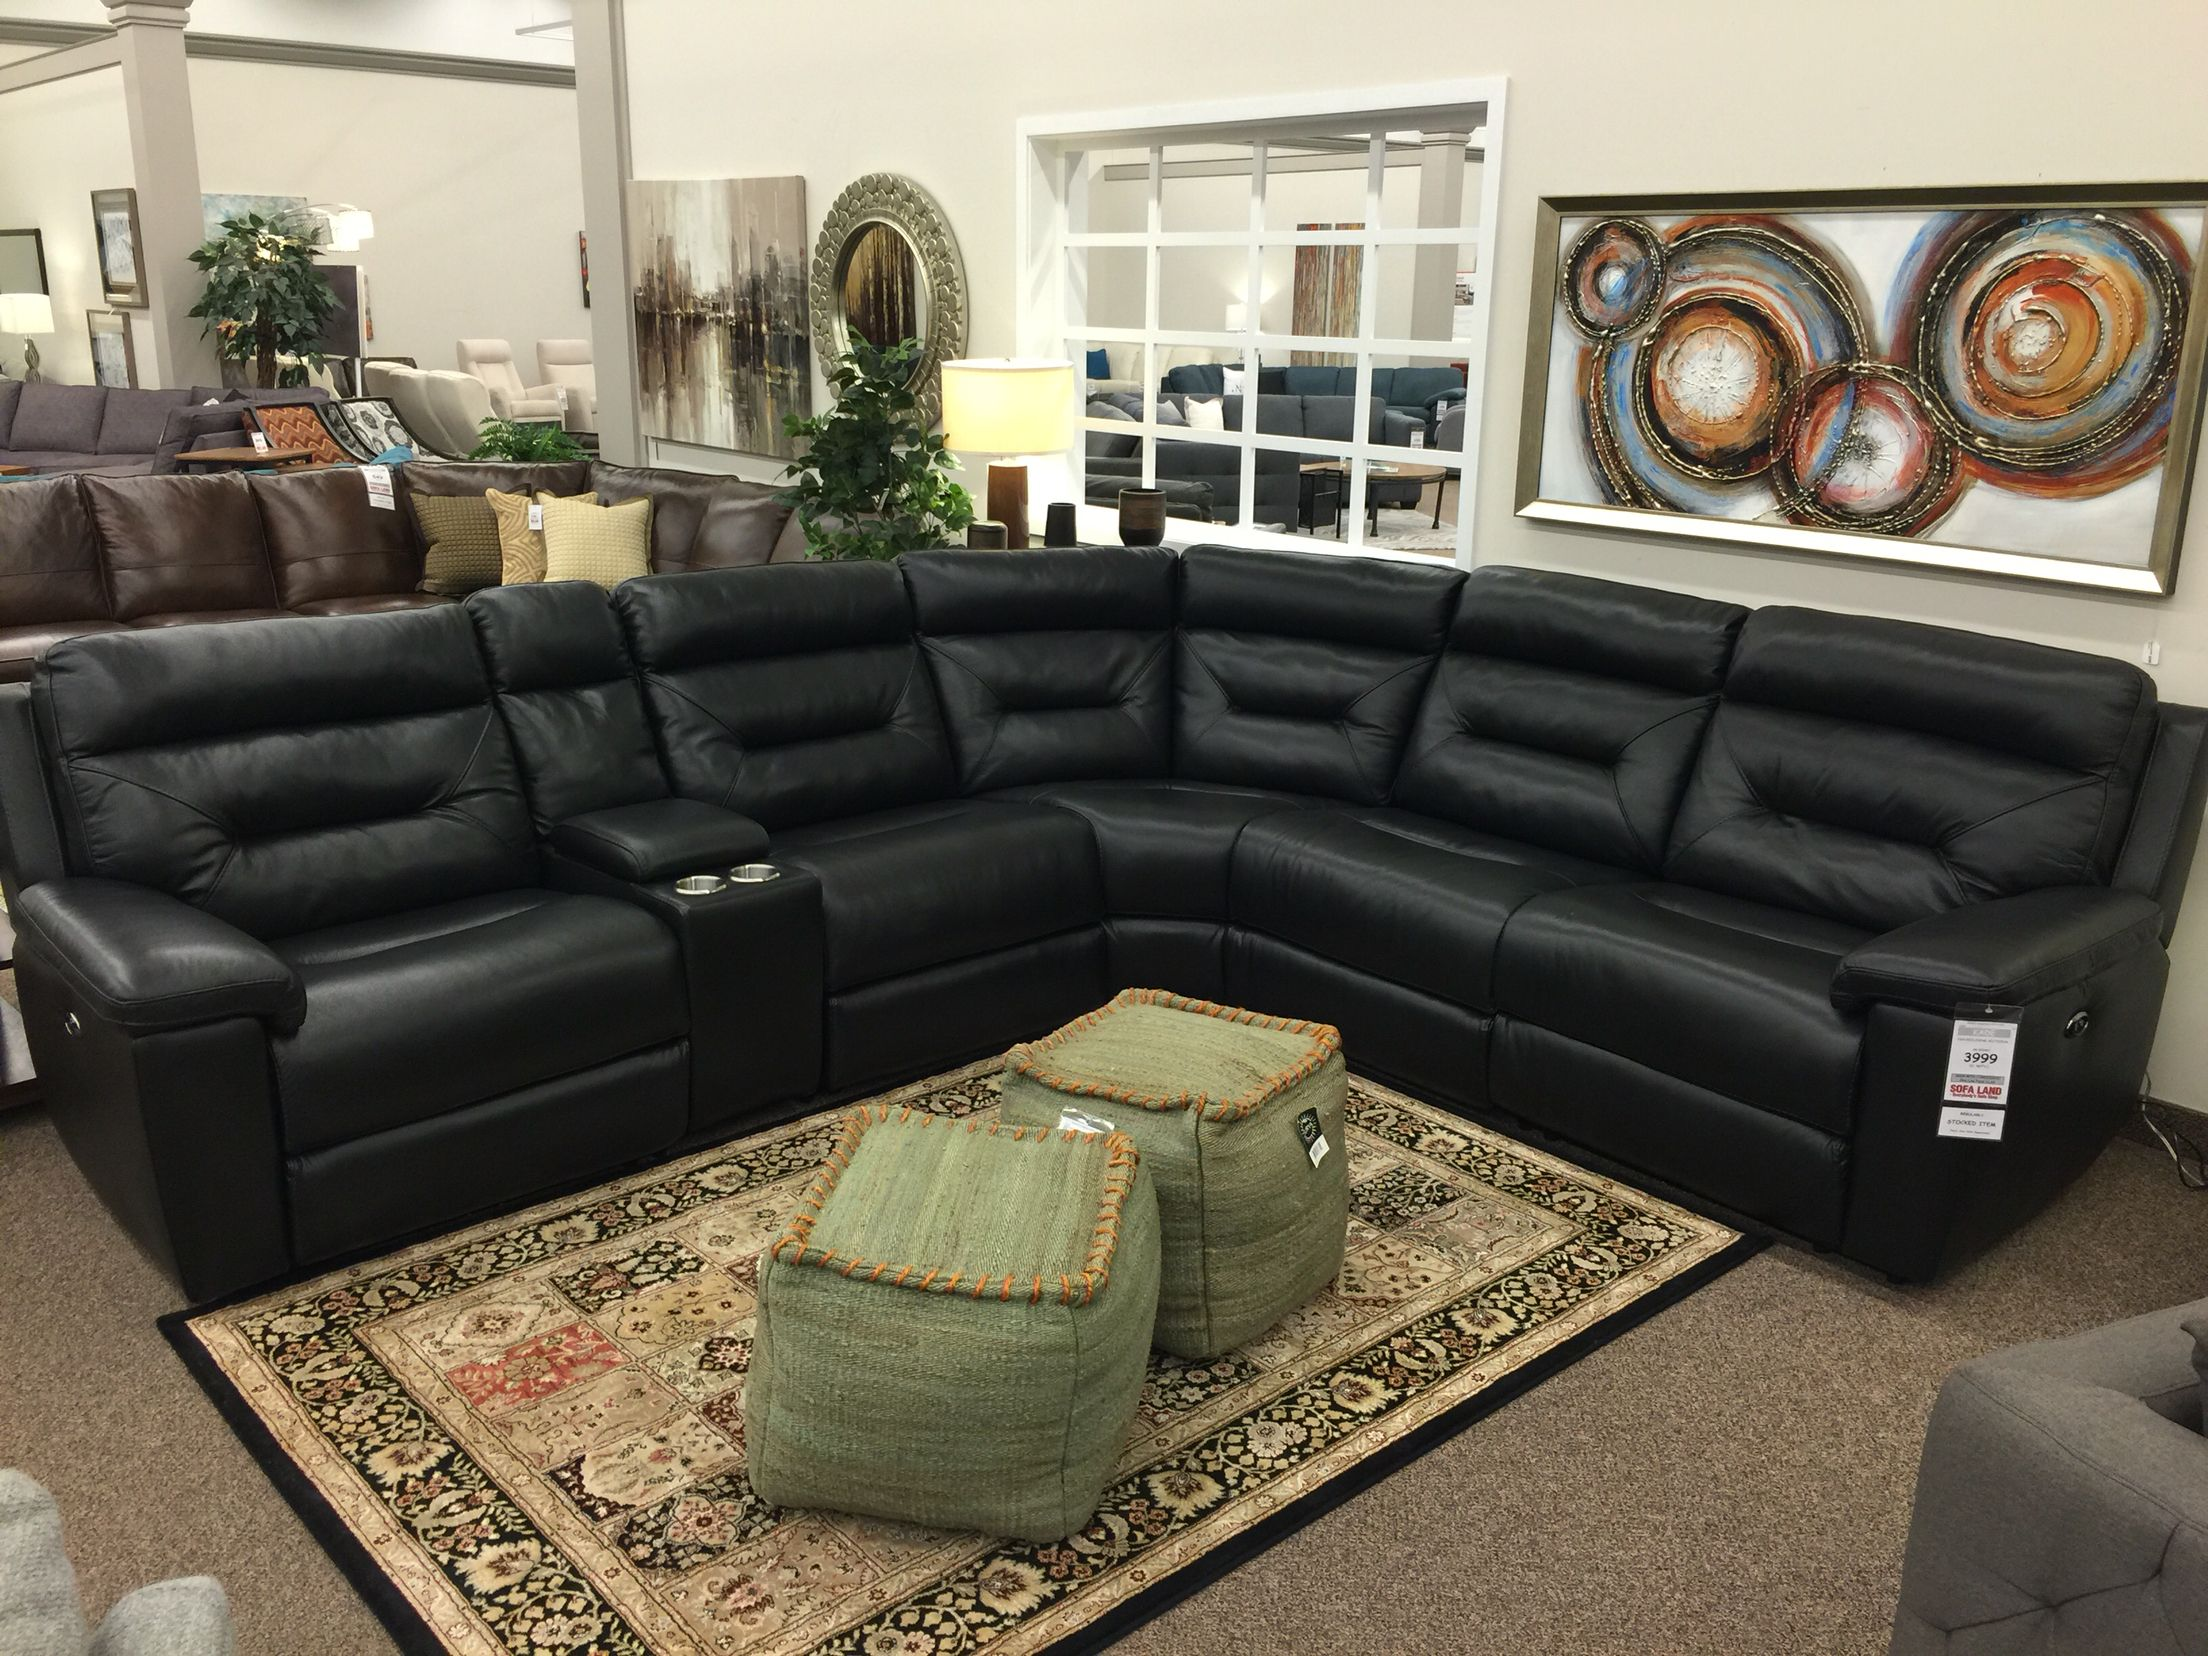 Sofaland Sectional The Kade Sectional Features Power Recliners That Can Easily Adjust